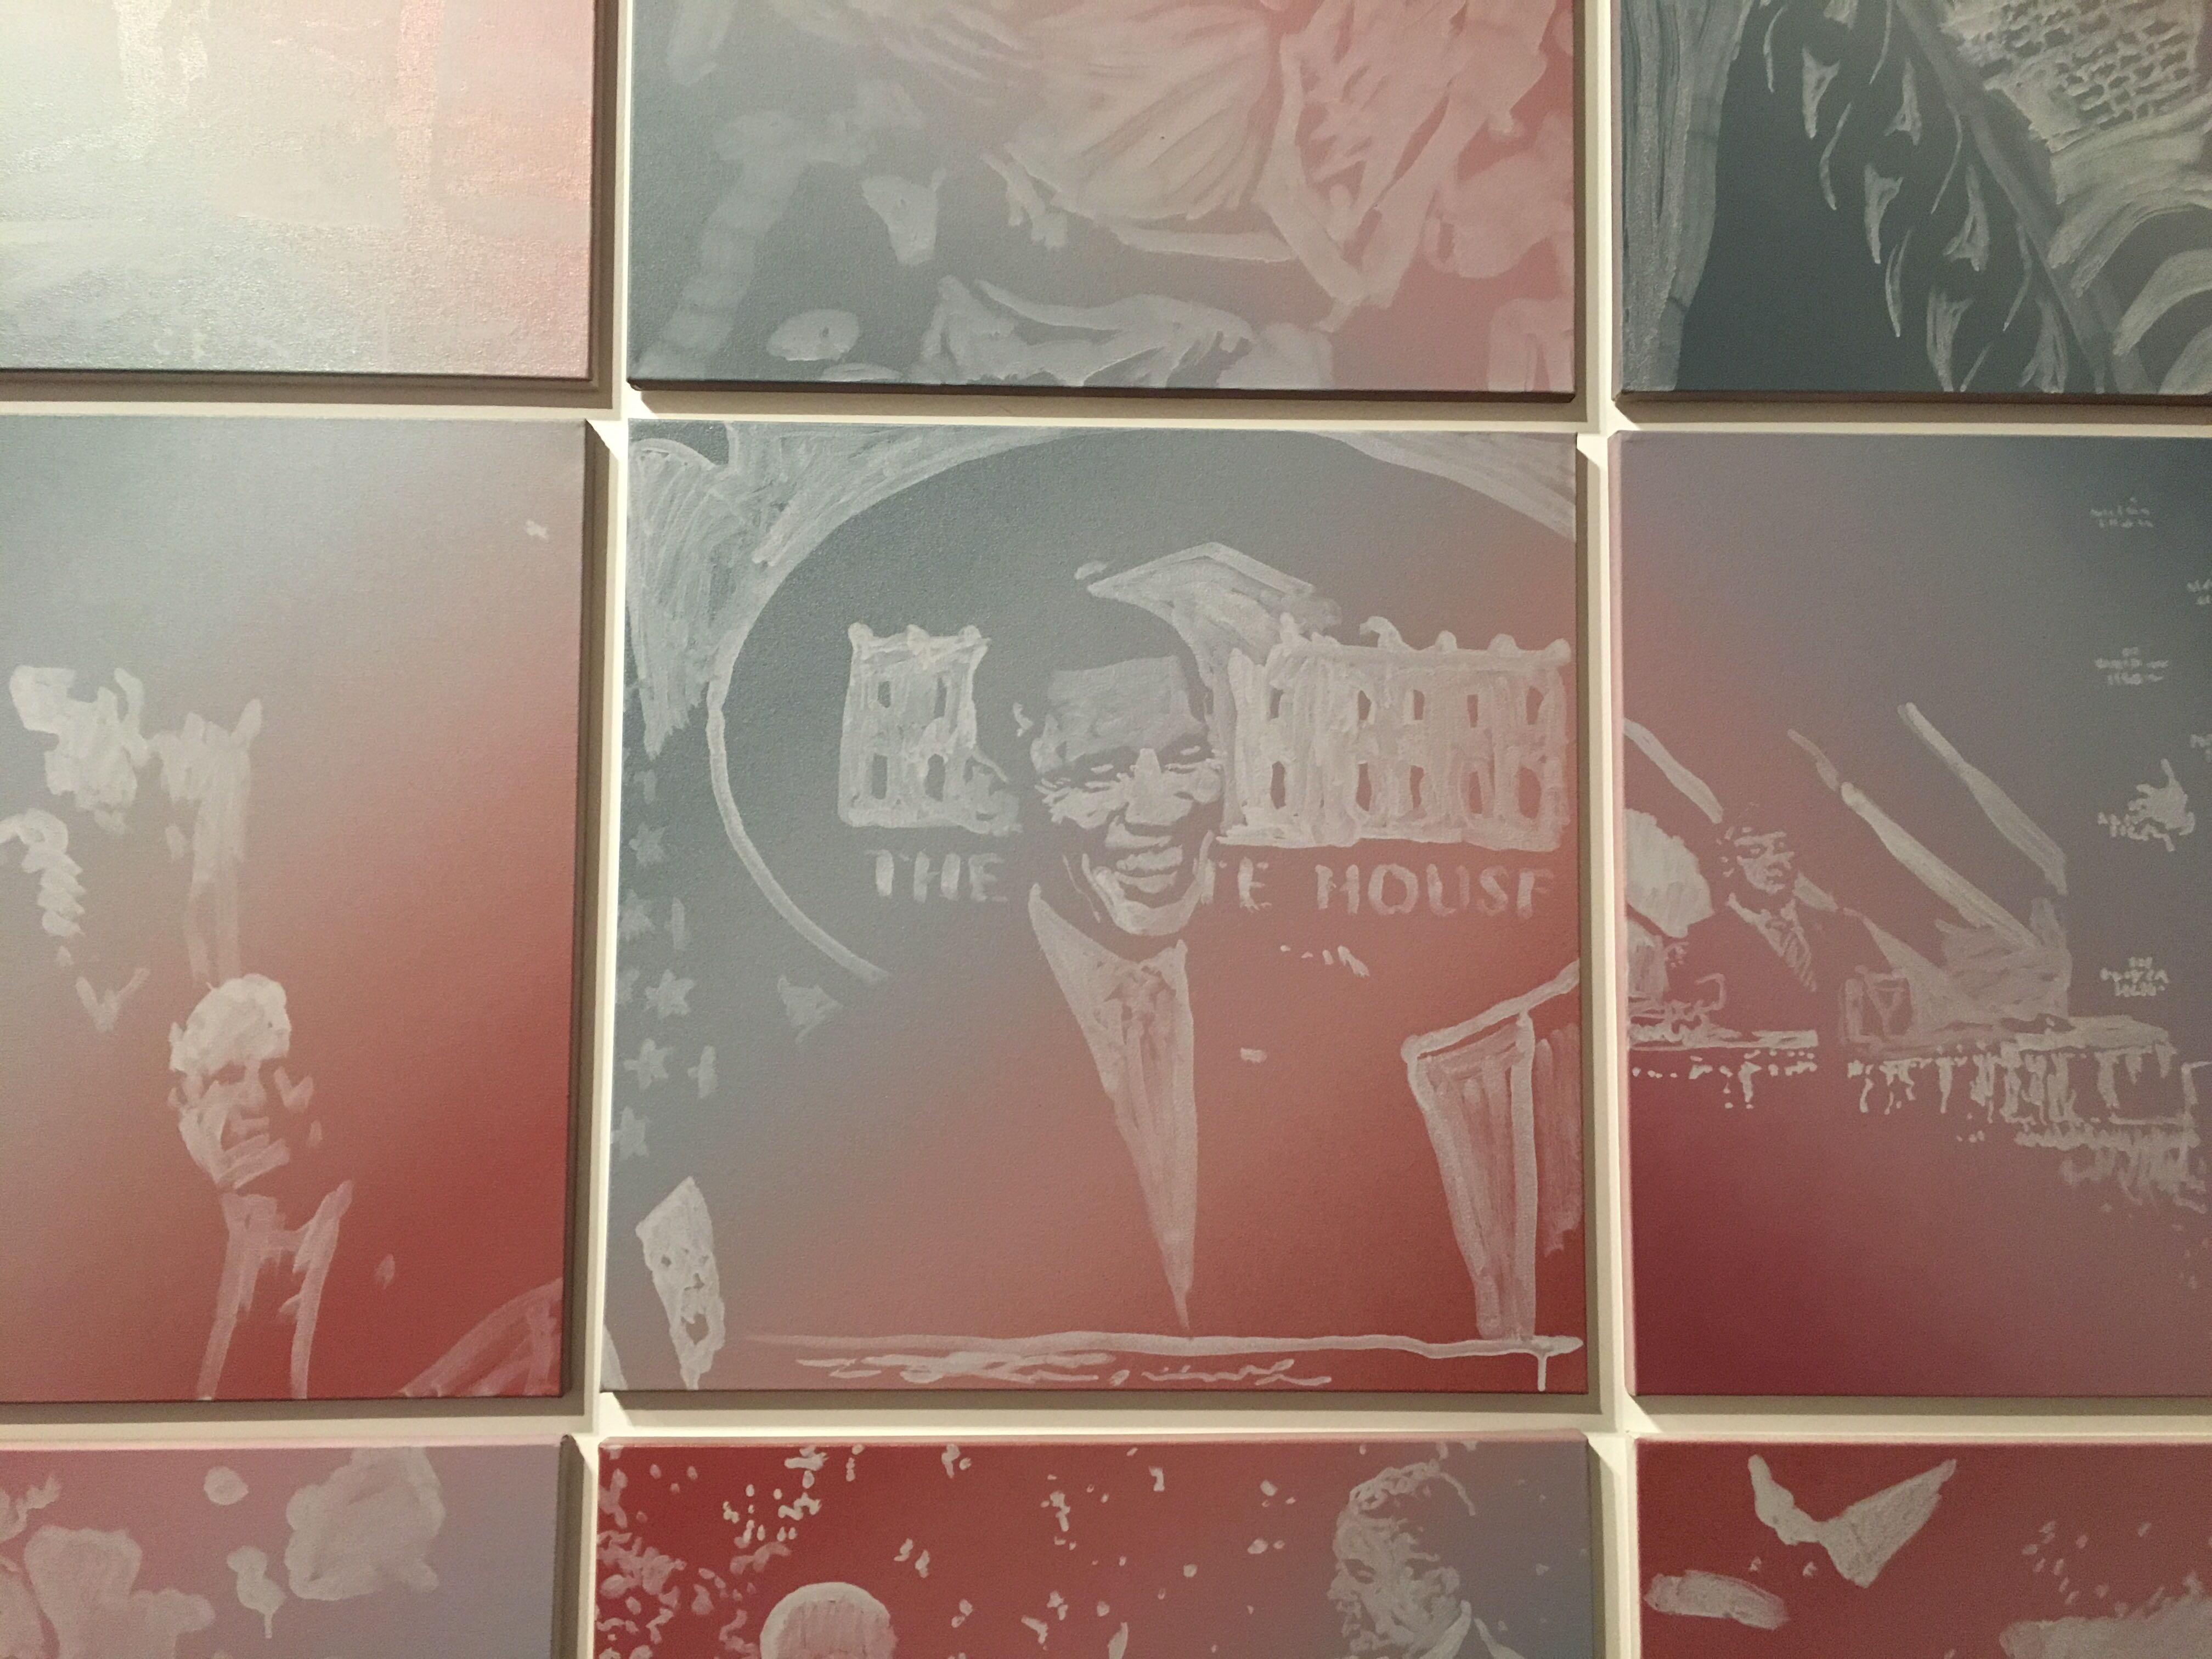 Obama Paintings exhibit